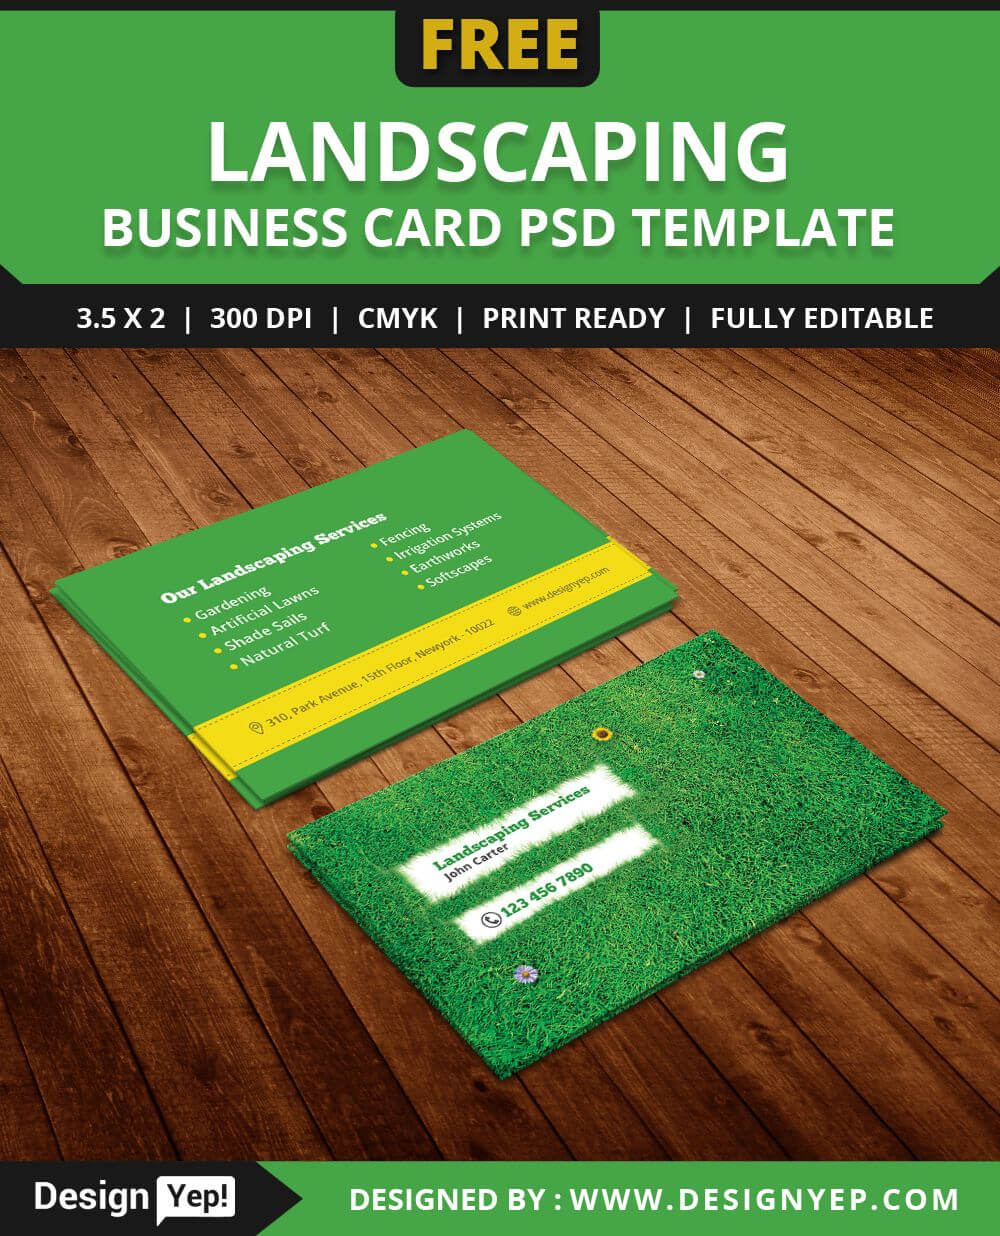 Free Landscaping Business Card Template Psd | Free Business Regarding Gardening Business Cards Templates